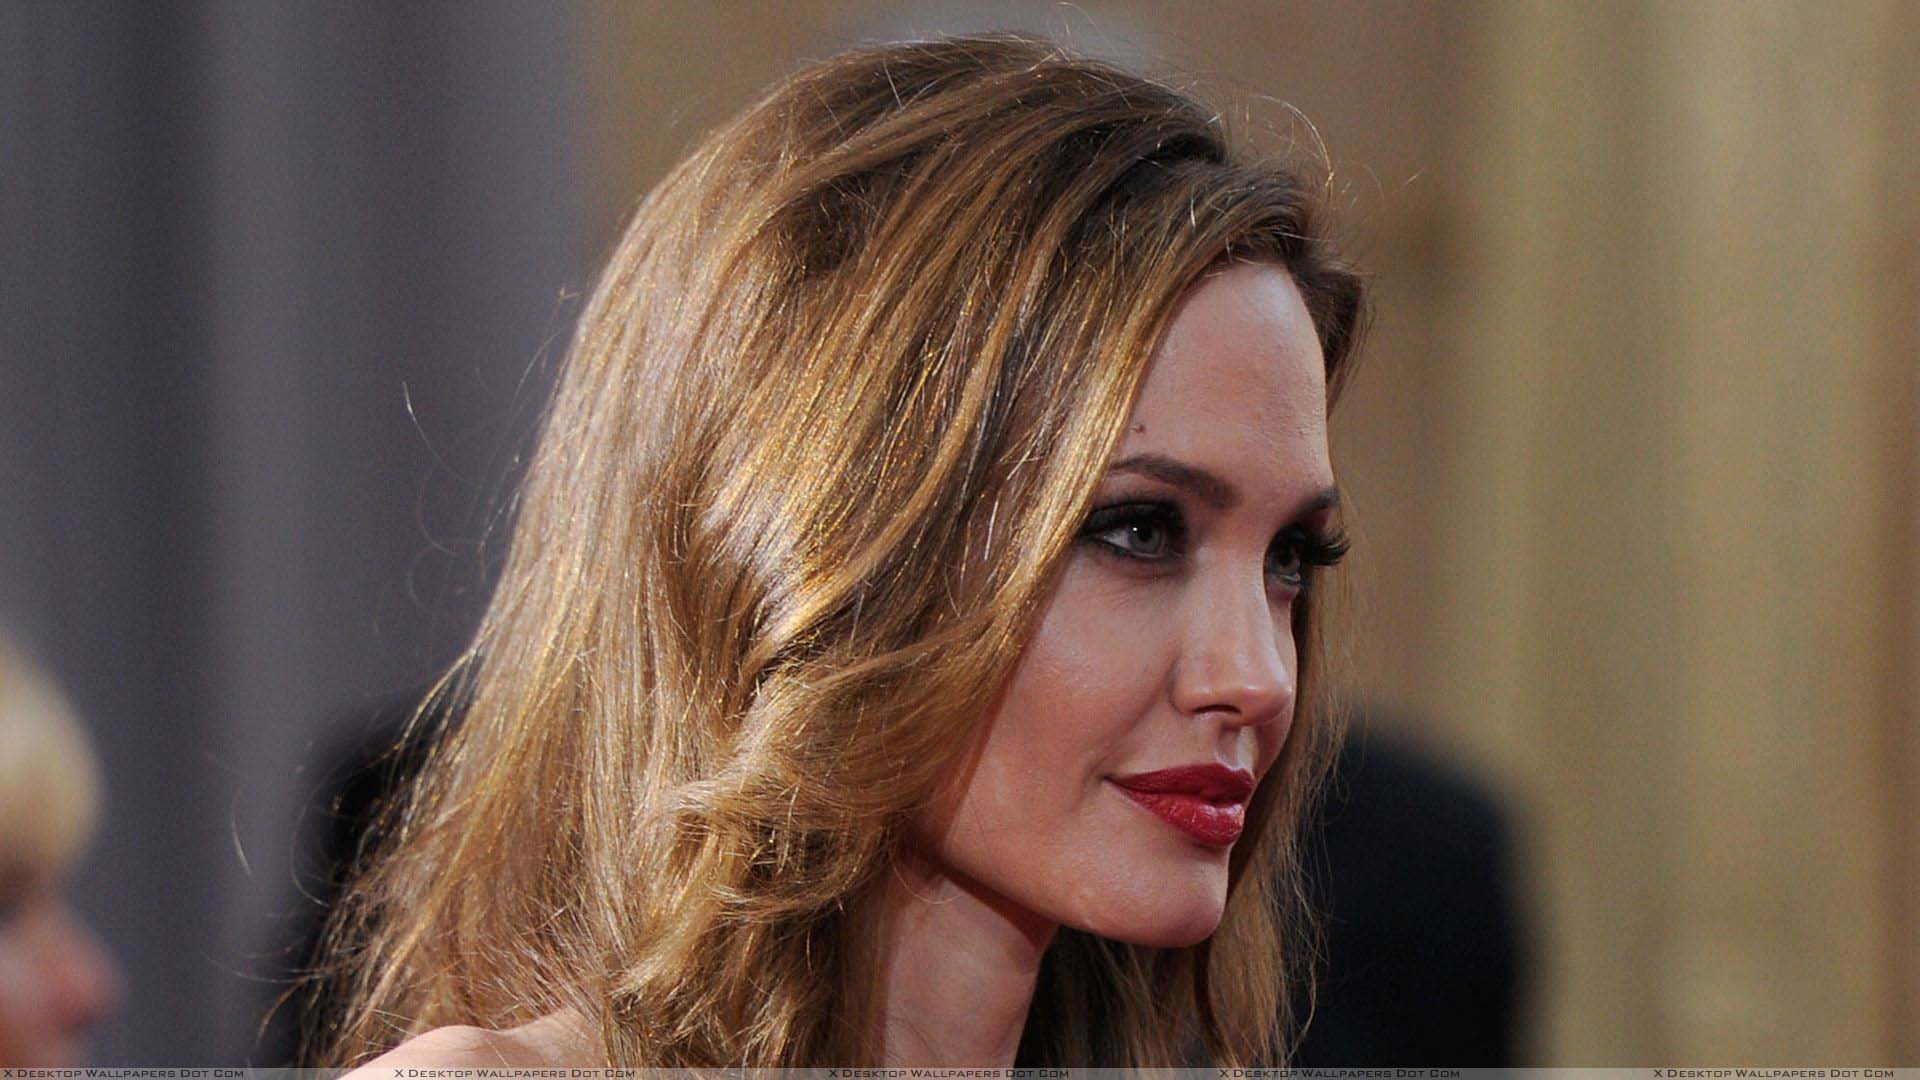 angelina jolie red lips beautiful romantic face modern images download hd